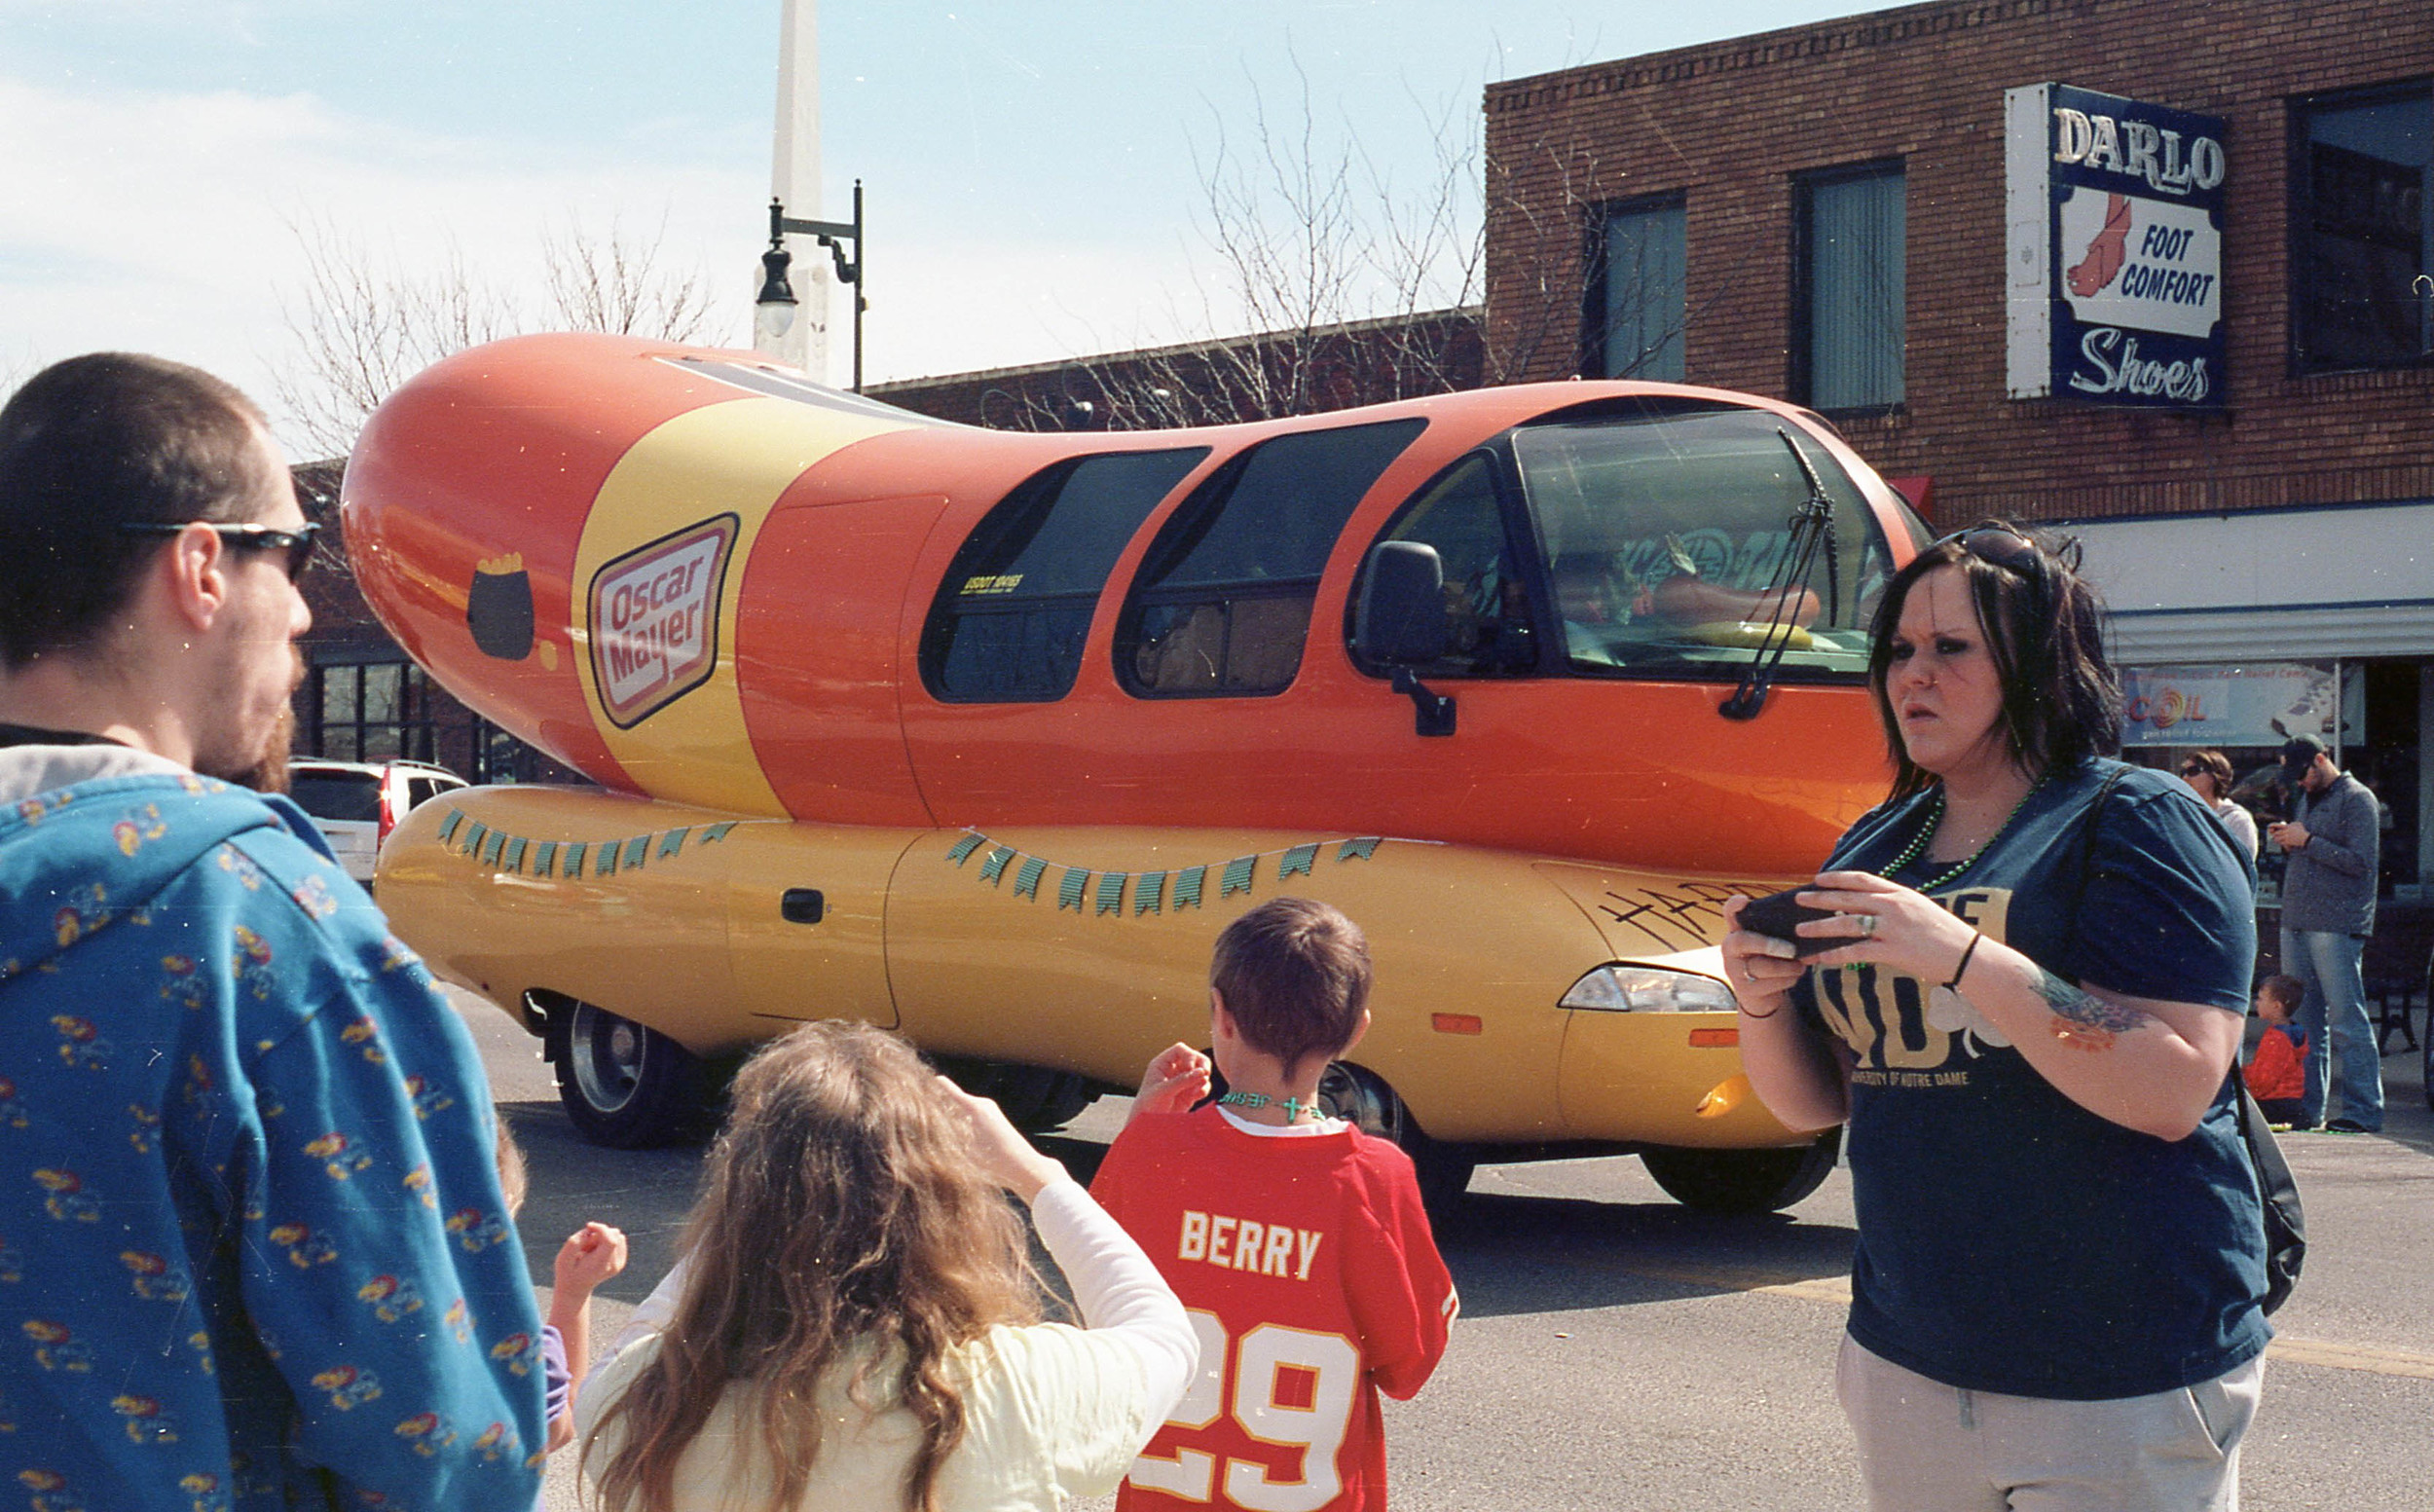 A parade isn't a parade without the Weinermobile.